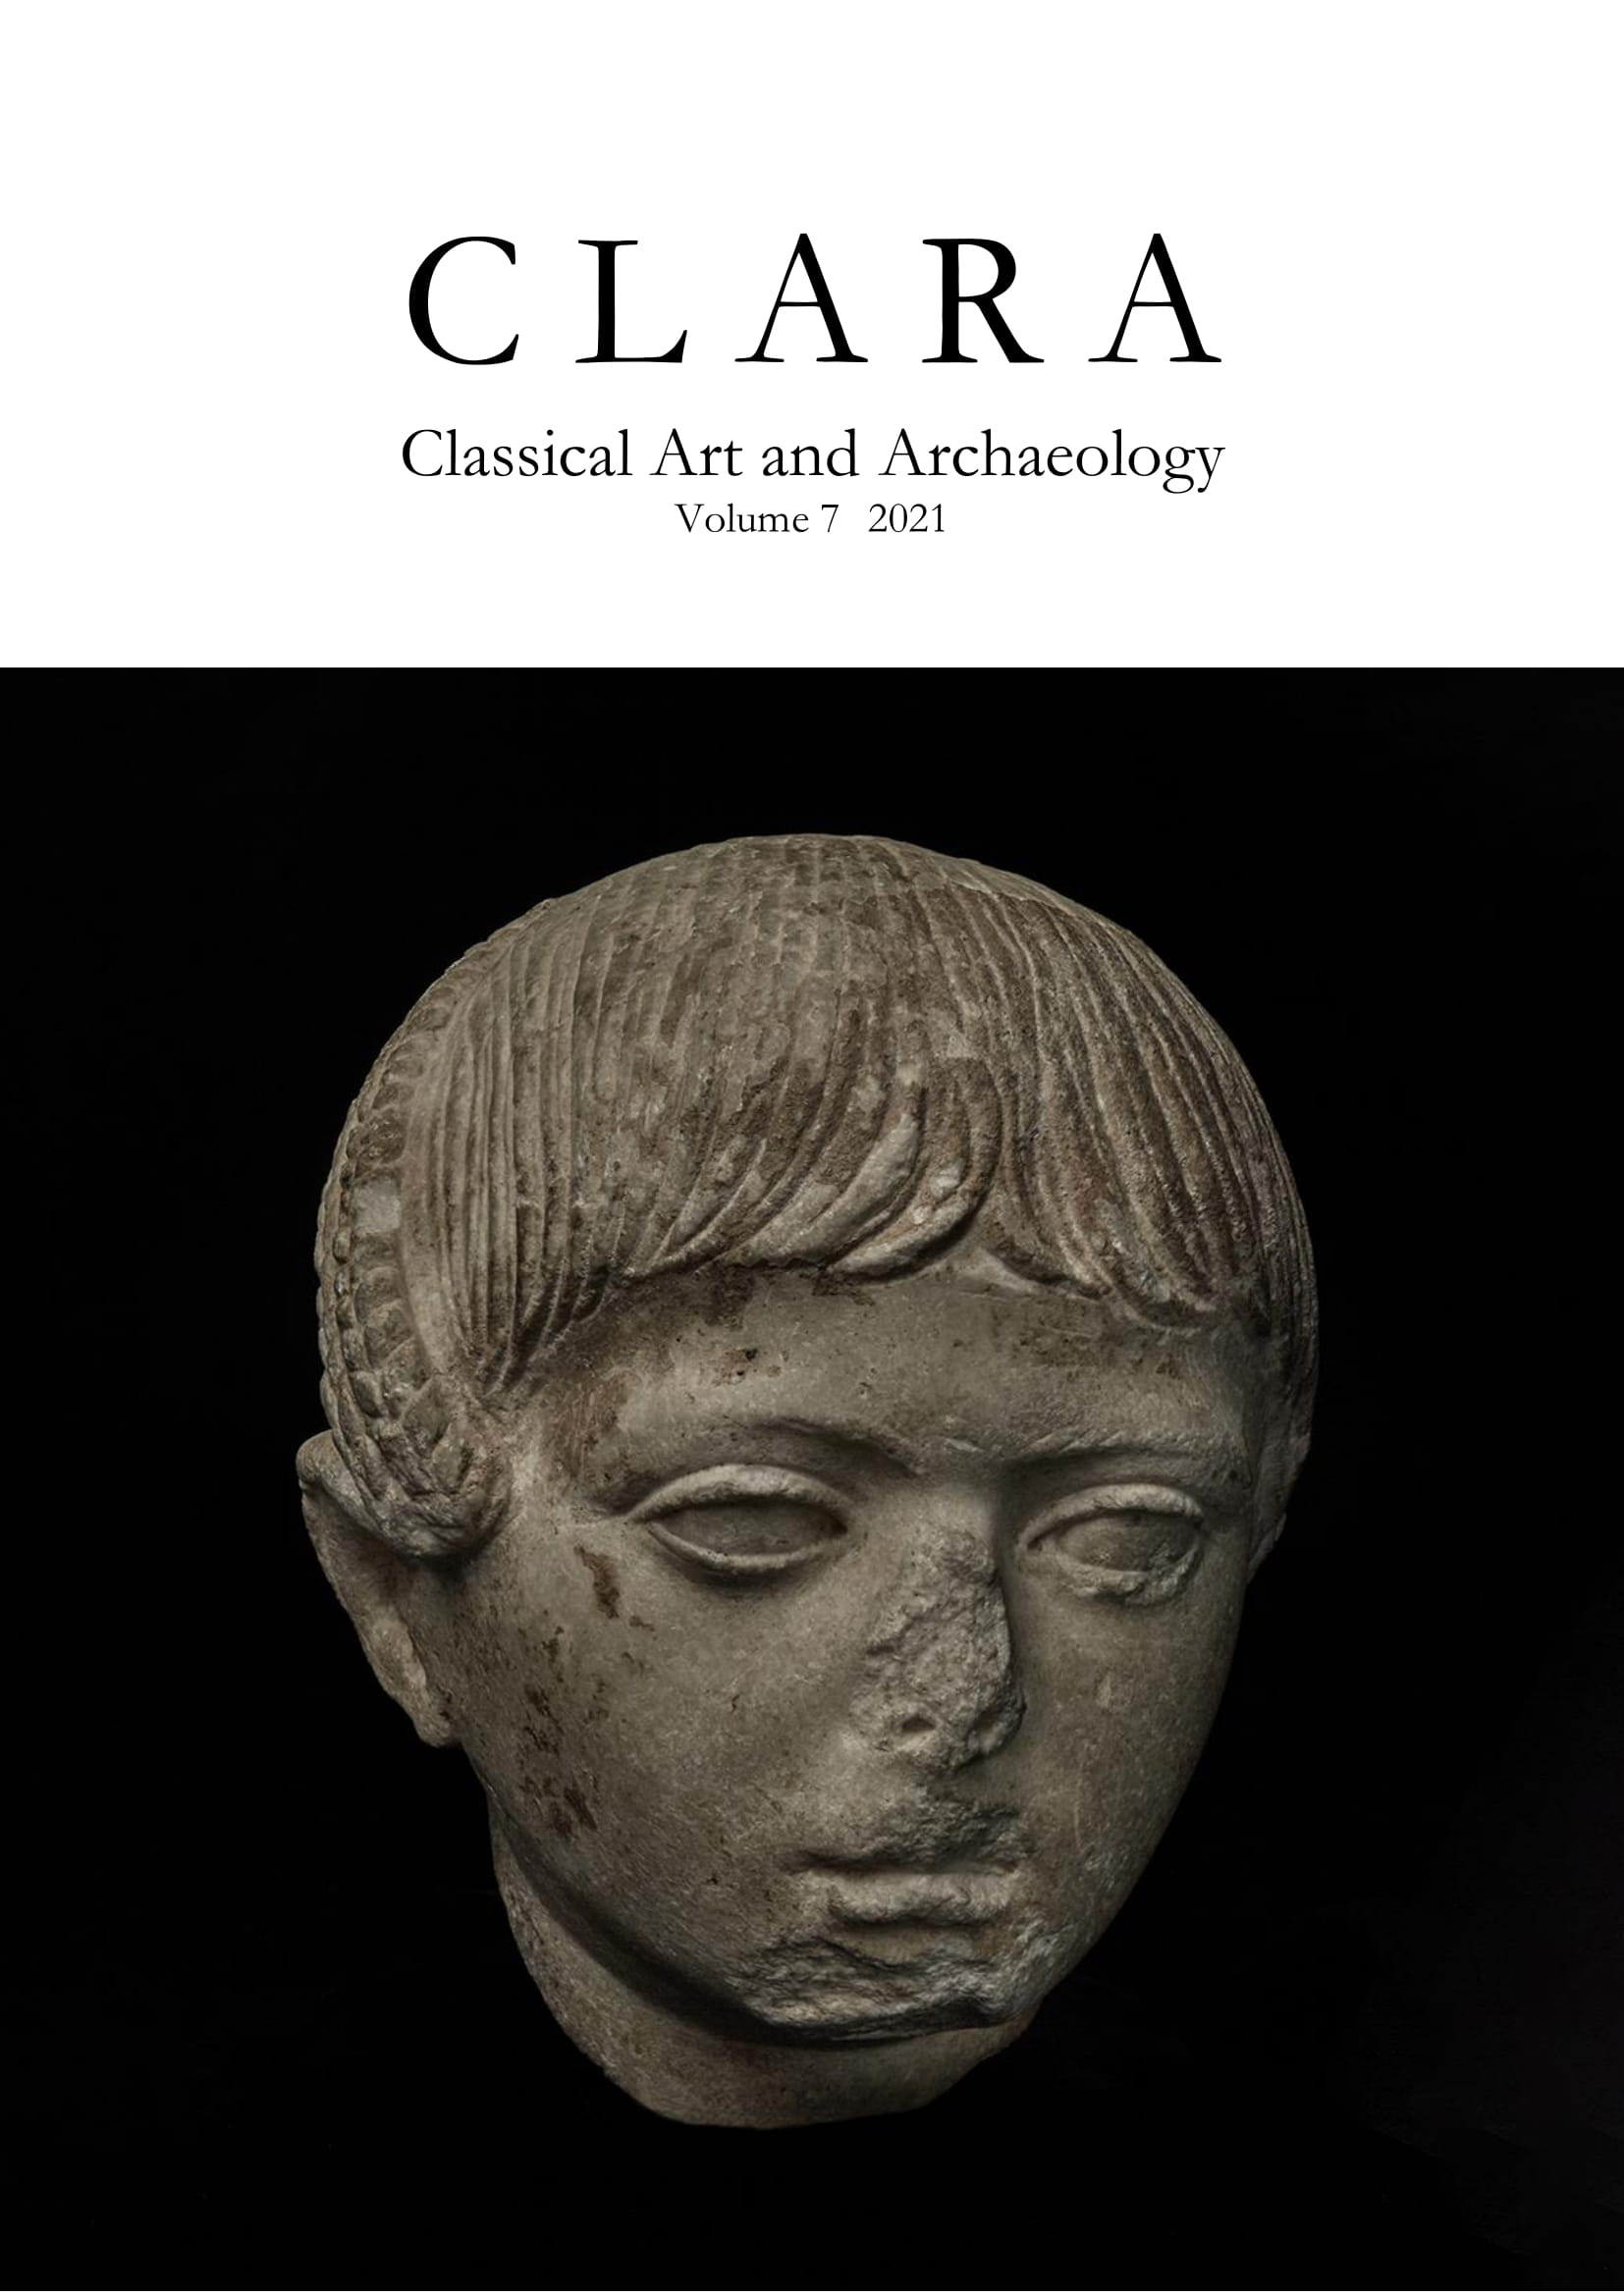 View Vol. 7 (2021): CLARA: Classical Art and Archaeology